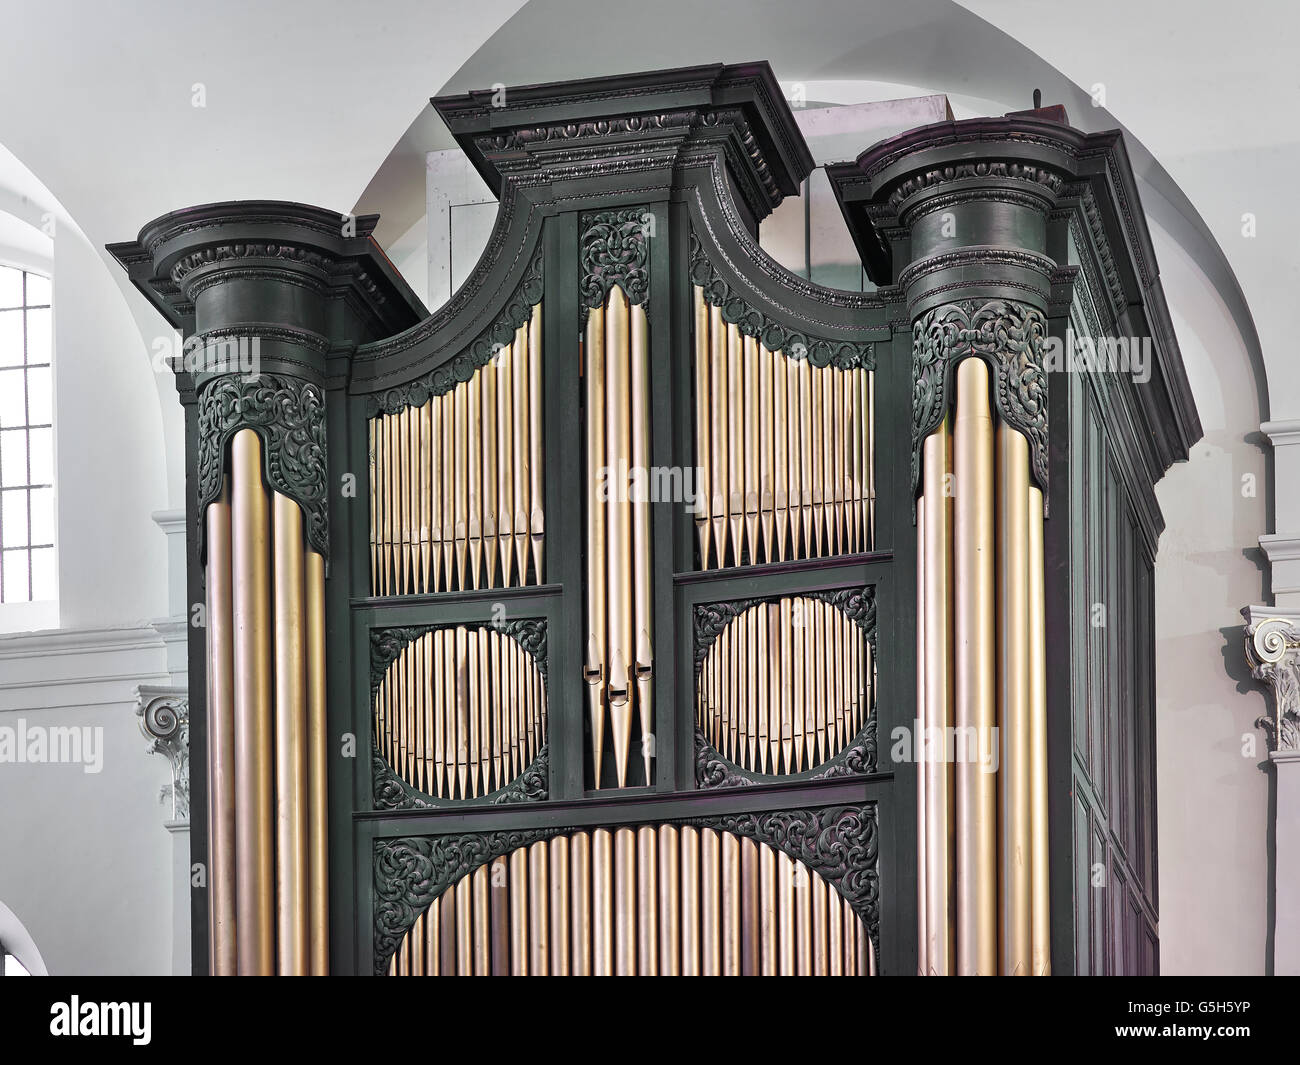 St Clement Eastcheap, church in the City of London. The organ by Renatus Harris. Stock Photo